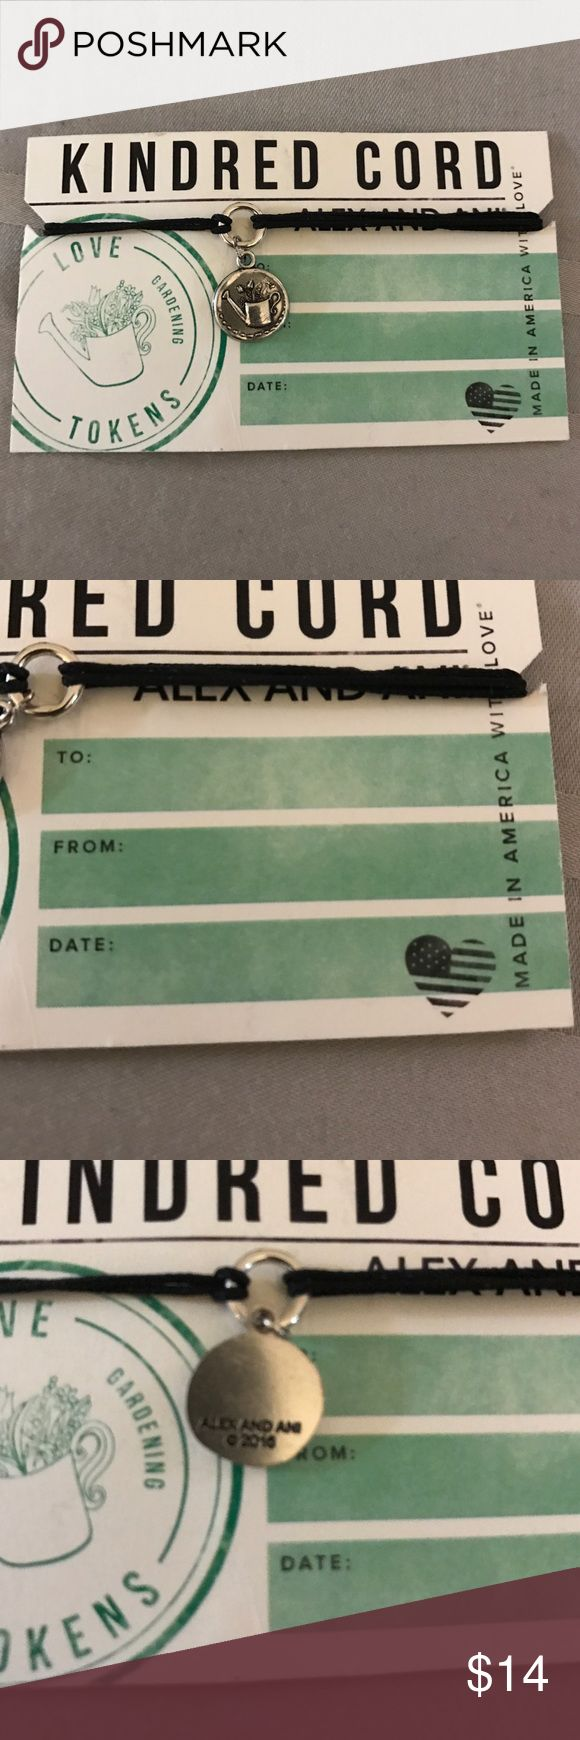 Alex and Ani Kindred Cord bracelet Alex and Ani Kindred Cord love token: a keepsake given or worn as a token of love. Brand new with retail tags Alex & Ani Jewelry Bracelets